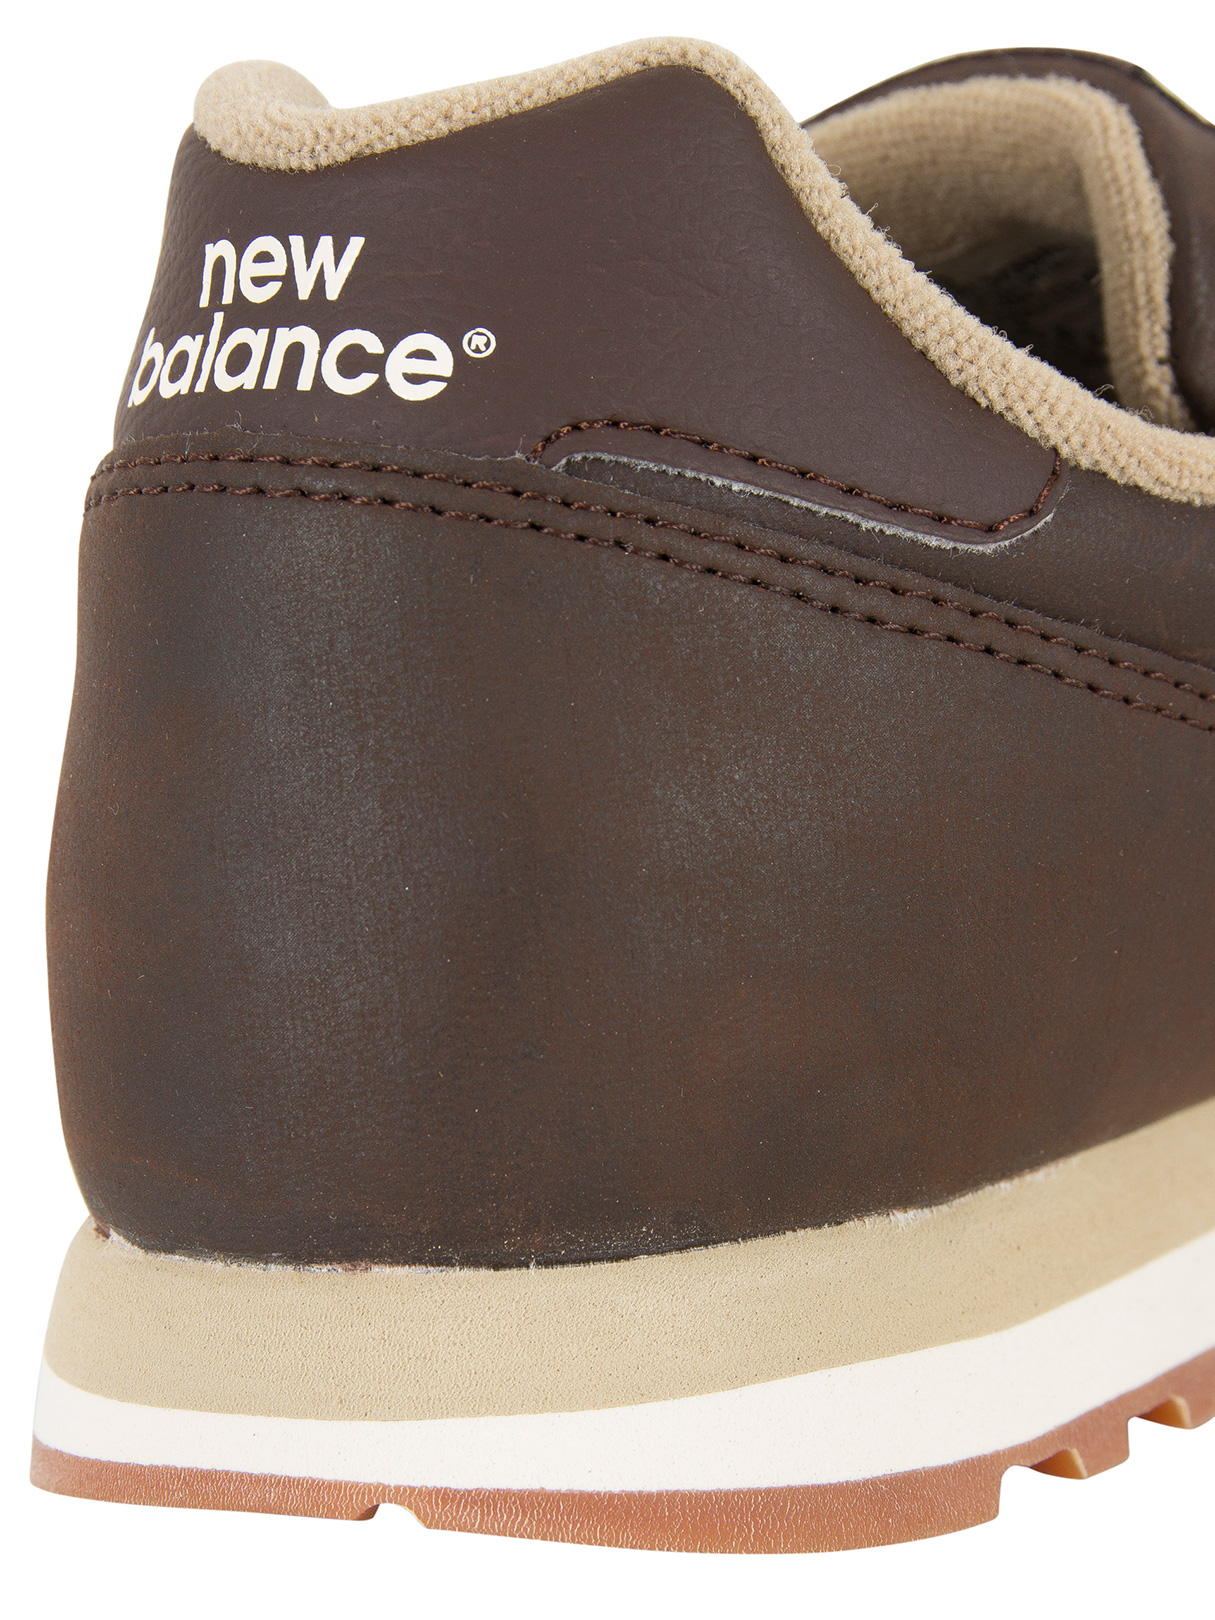 new balance 373 brown leather